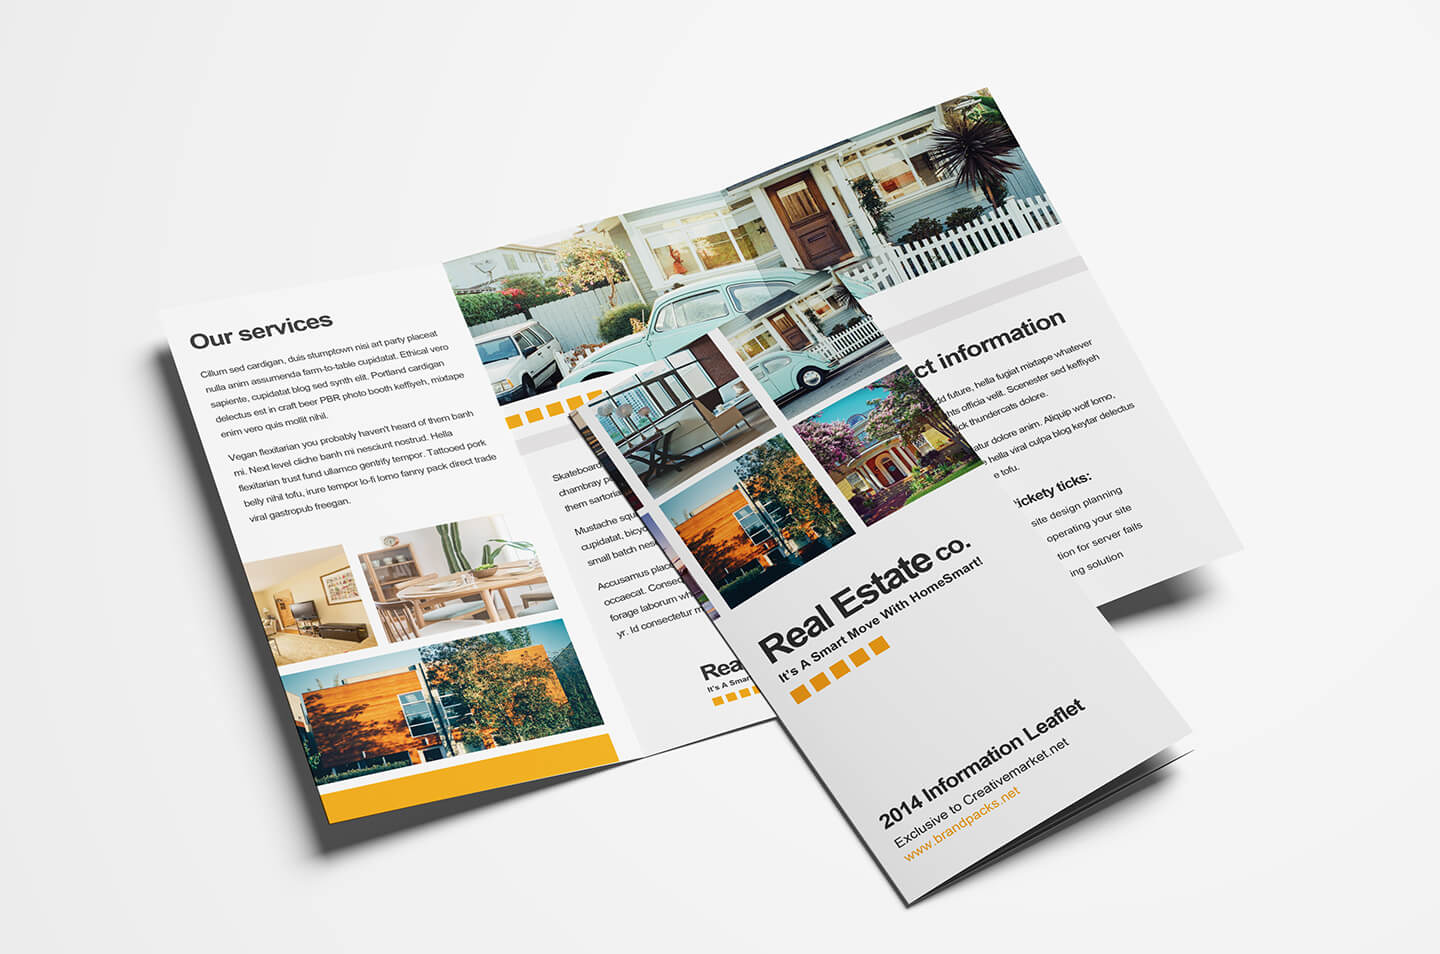 Free Real Estate Trifold Brochure Template In Psd, Ai Pertaining To Real Estate Brochure Templates Psd Free Download